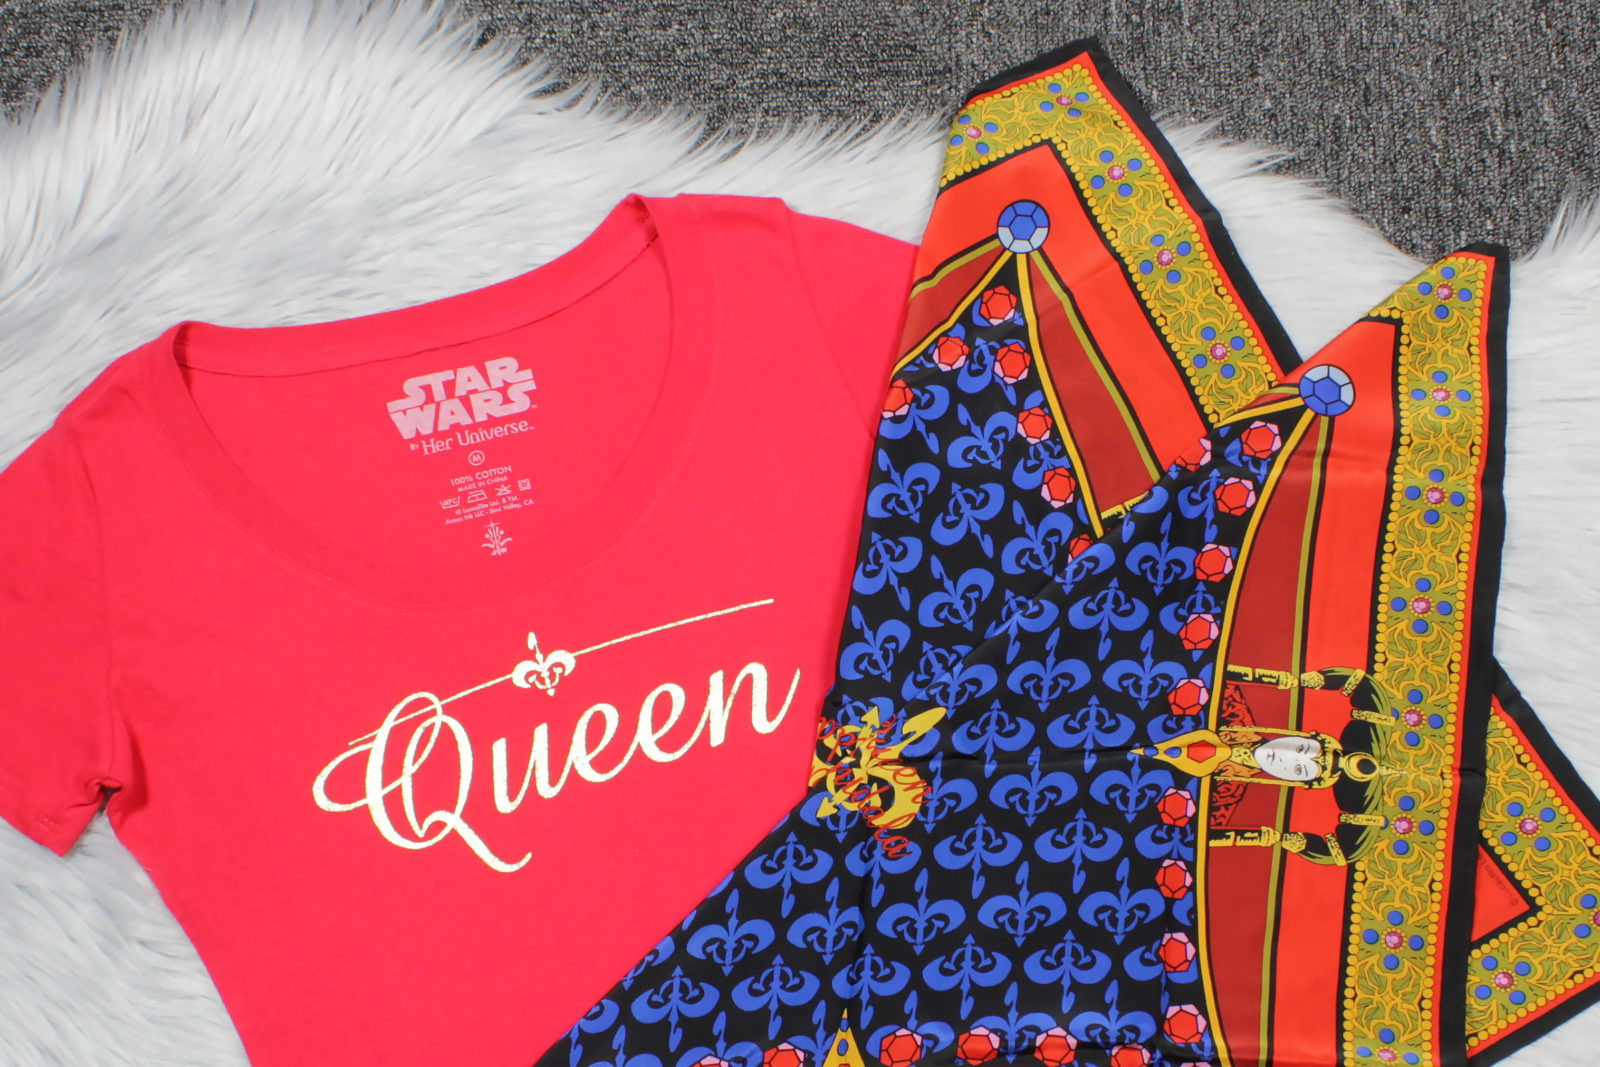 Star Wars The Phantom Menace Queen Amidala T-Shirt by Her Universe and Scarves by Ralph Marlin